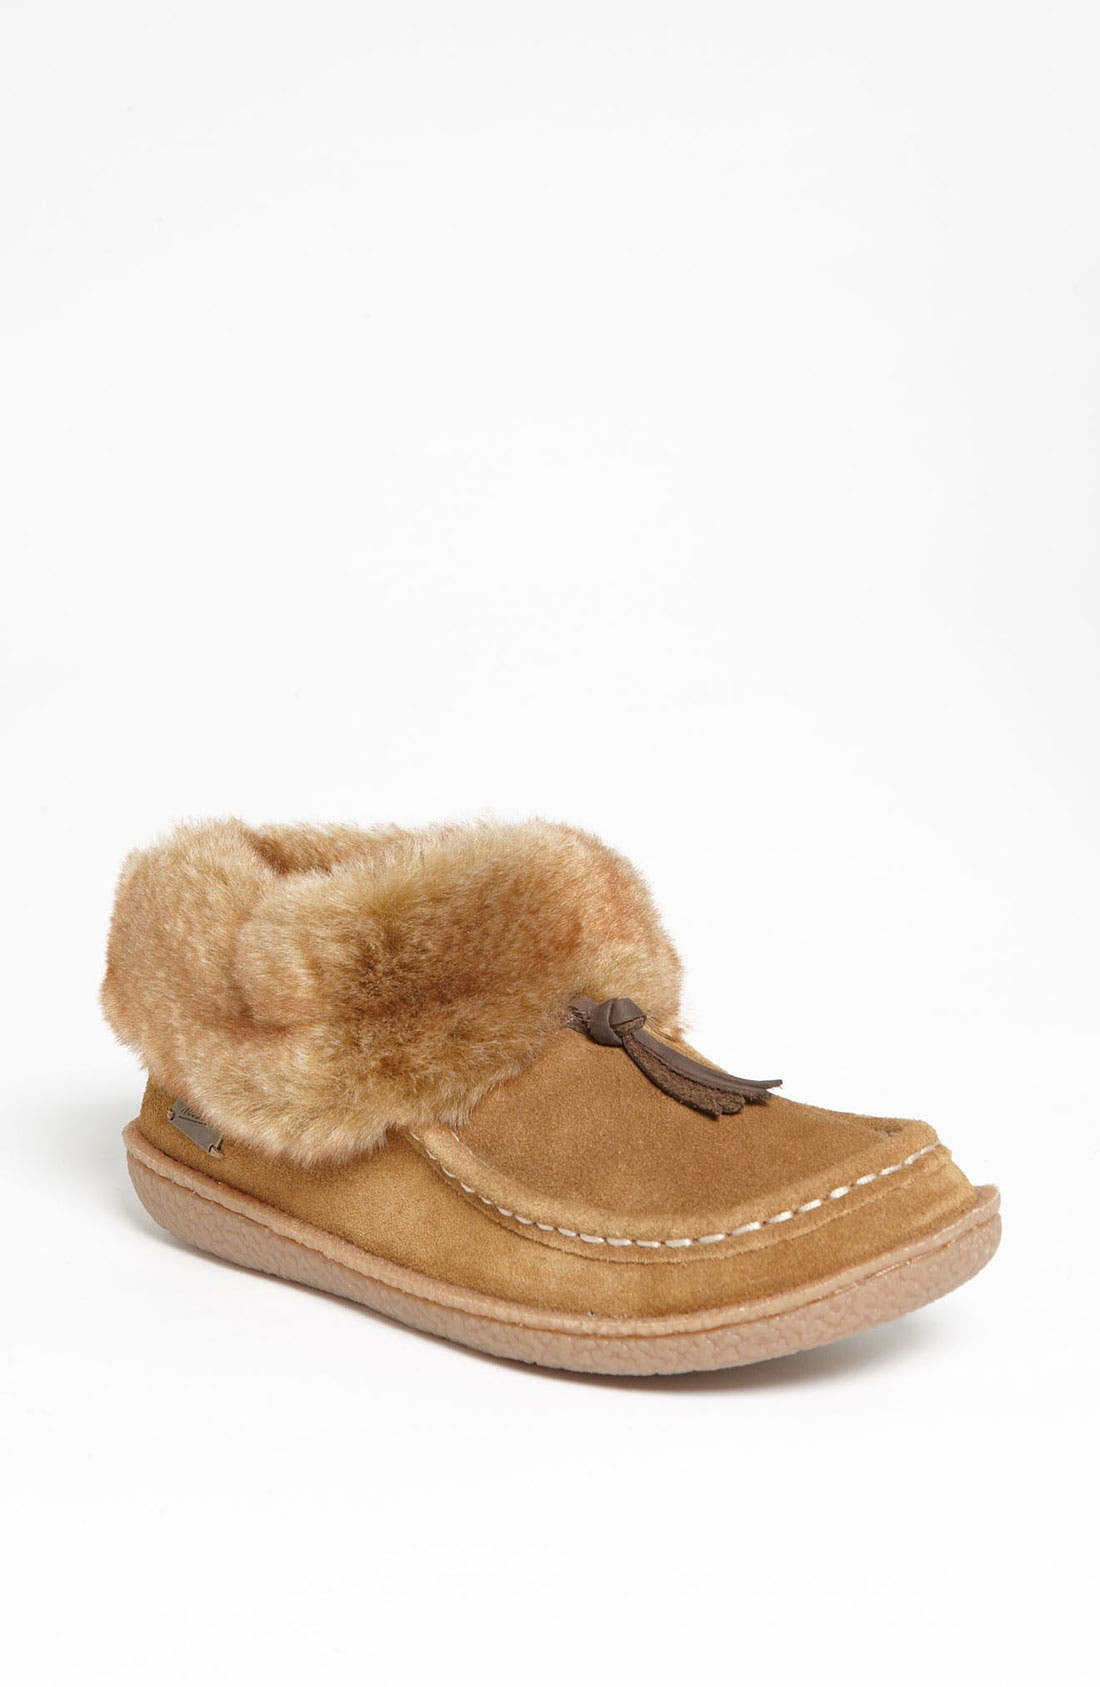 Alternate Image 1 Selected - Woolrich 'Willowbrook' Bootie Slipper (Women)